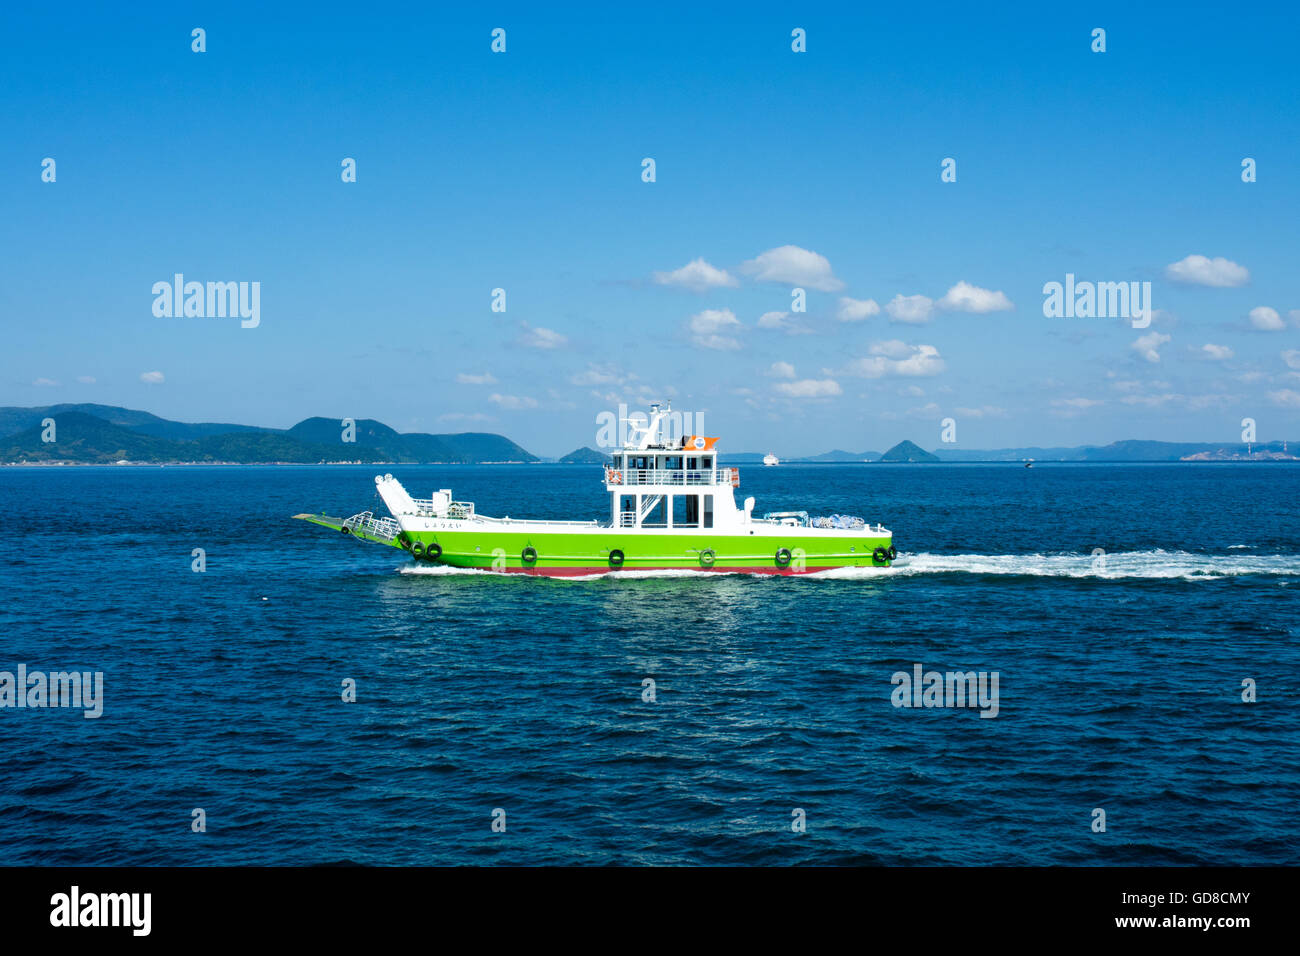 A small transport ferry crossing the Seto Inland Sea. - Stock Image